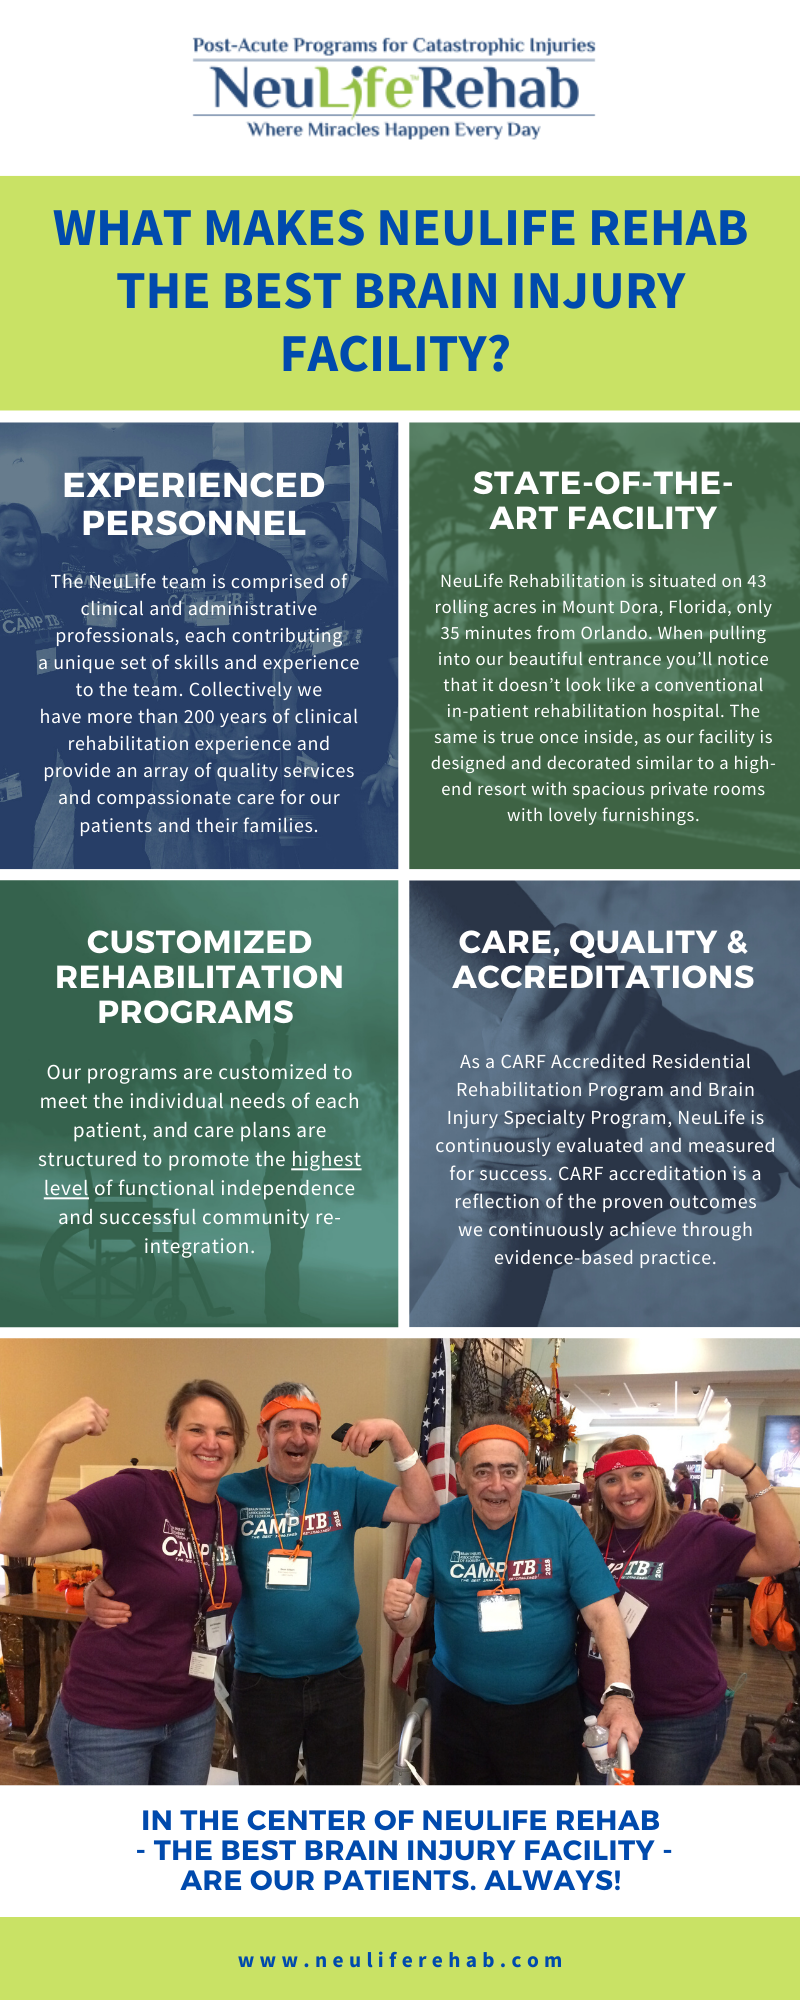 Green Soy Health Benefits Infographic - How COVID-19 Affects Post-acute Residential Rehabilitation for TBI Patients